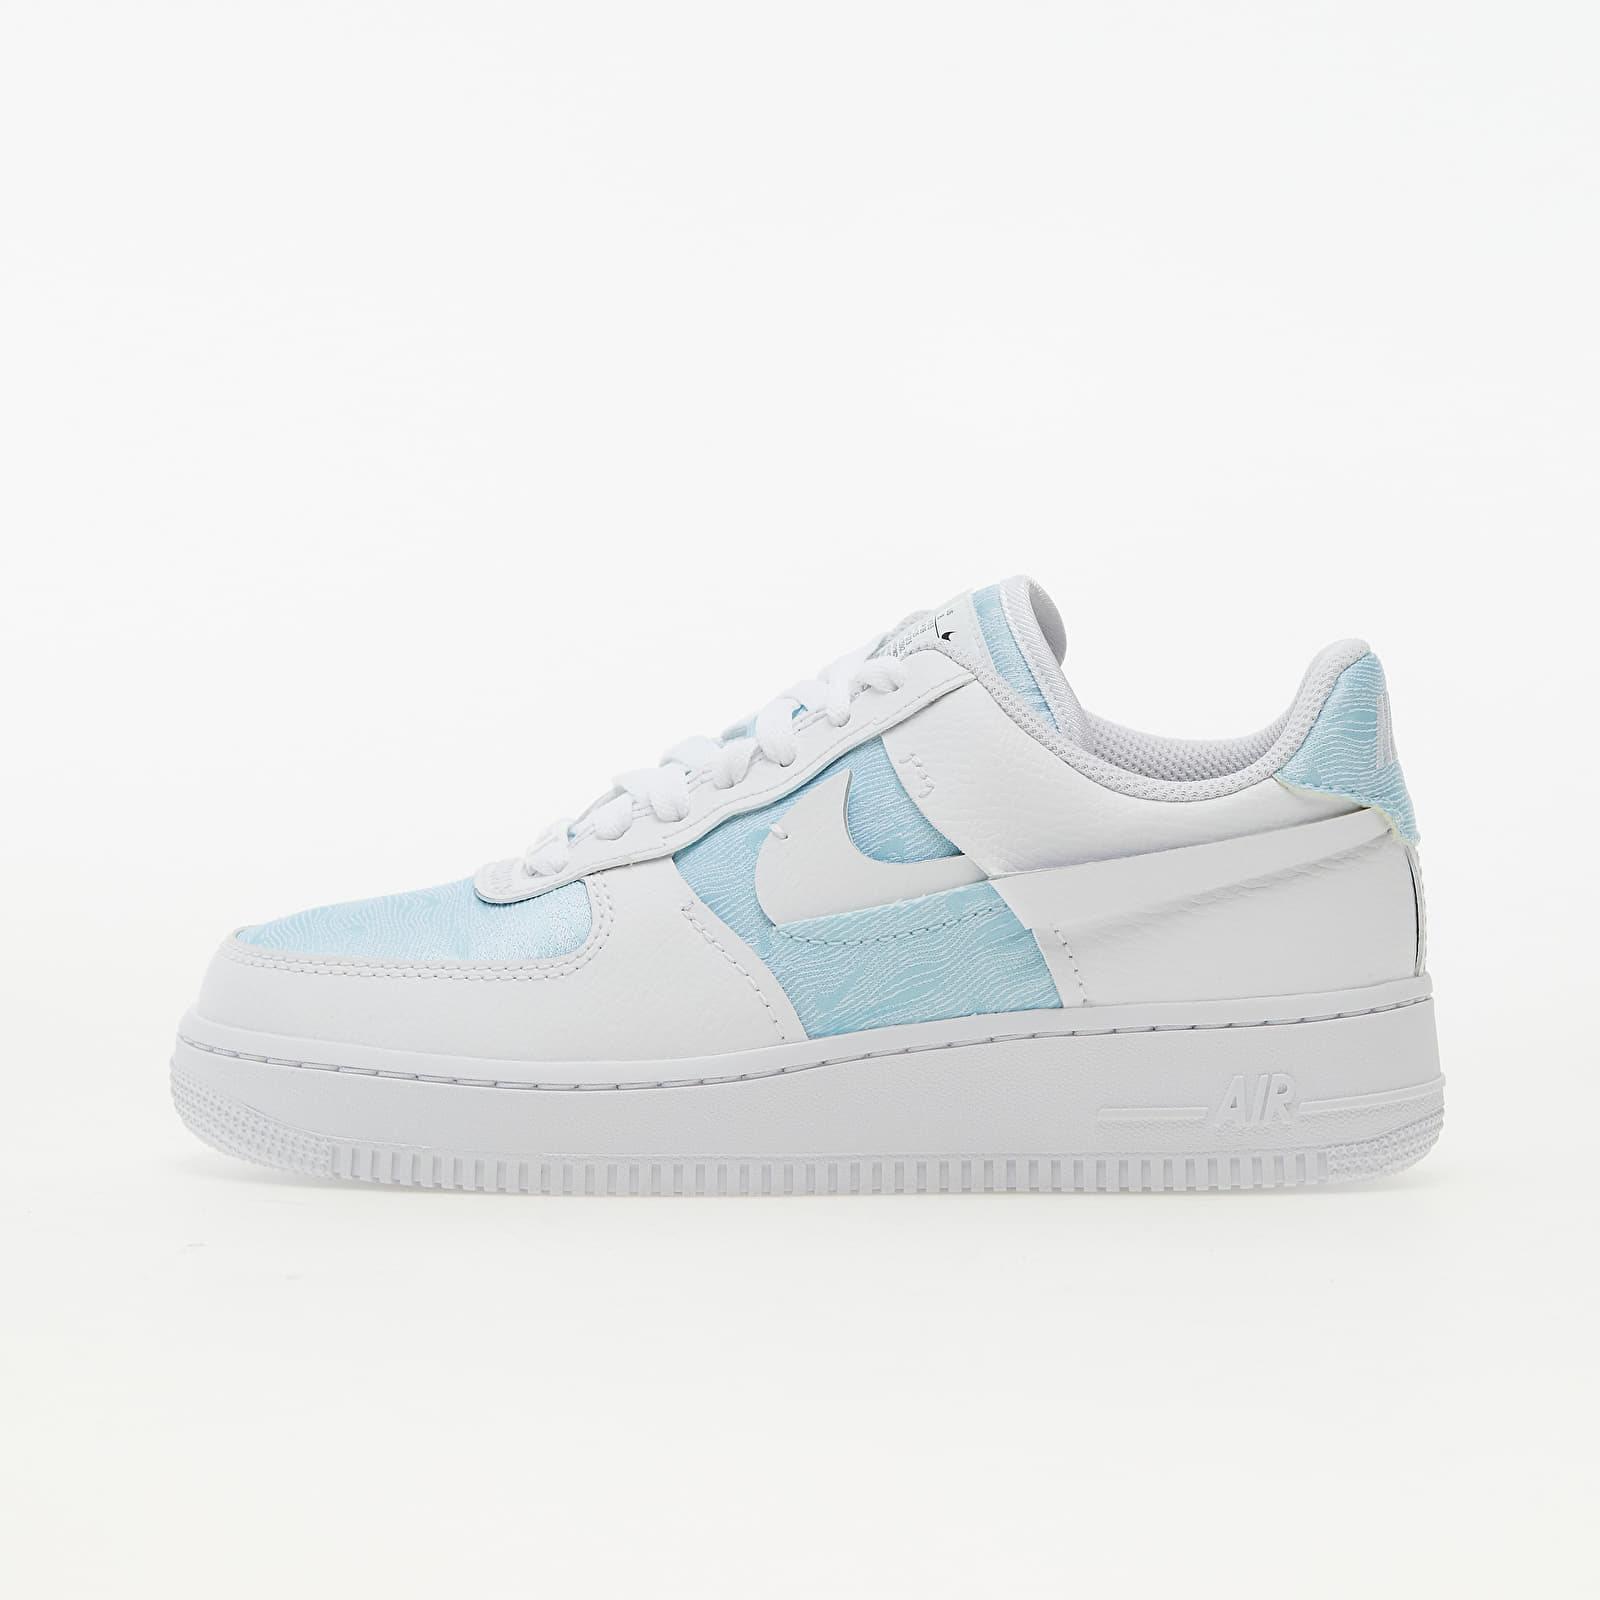 Nike Wmns Air Force 1 LXX Glacier Blue/ White-Black EUR 39